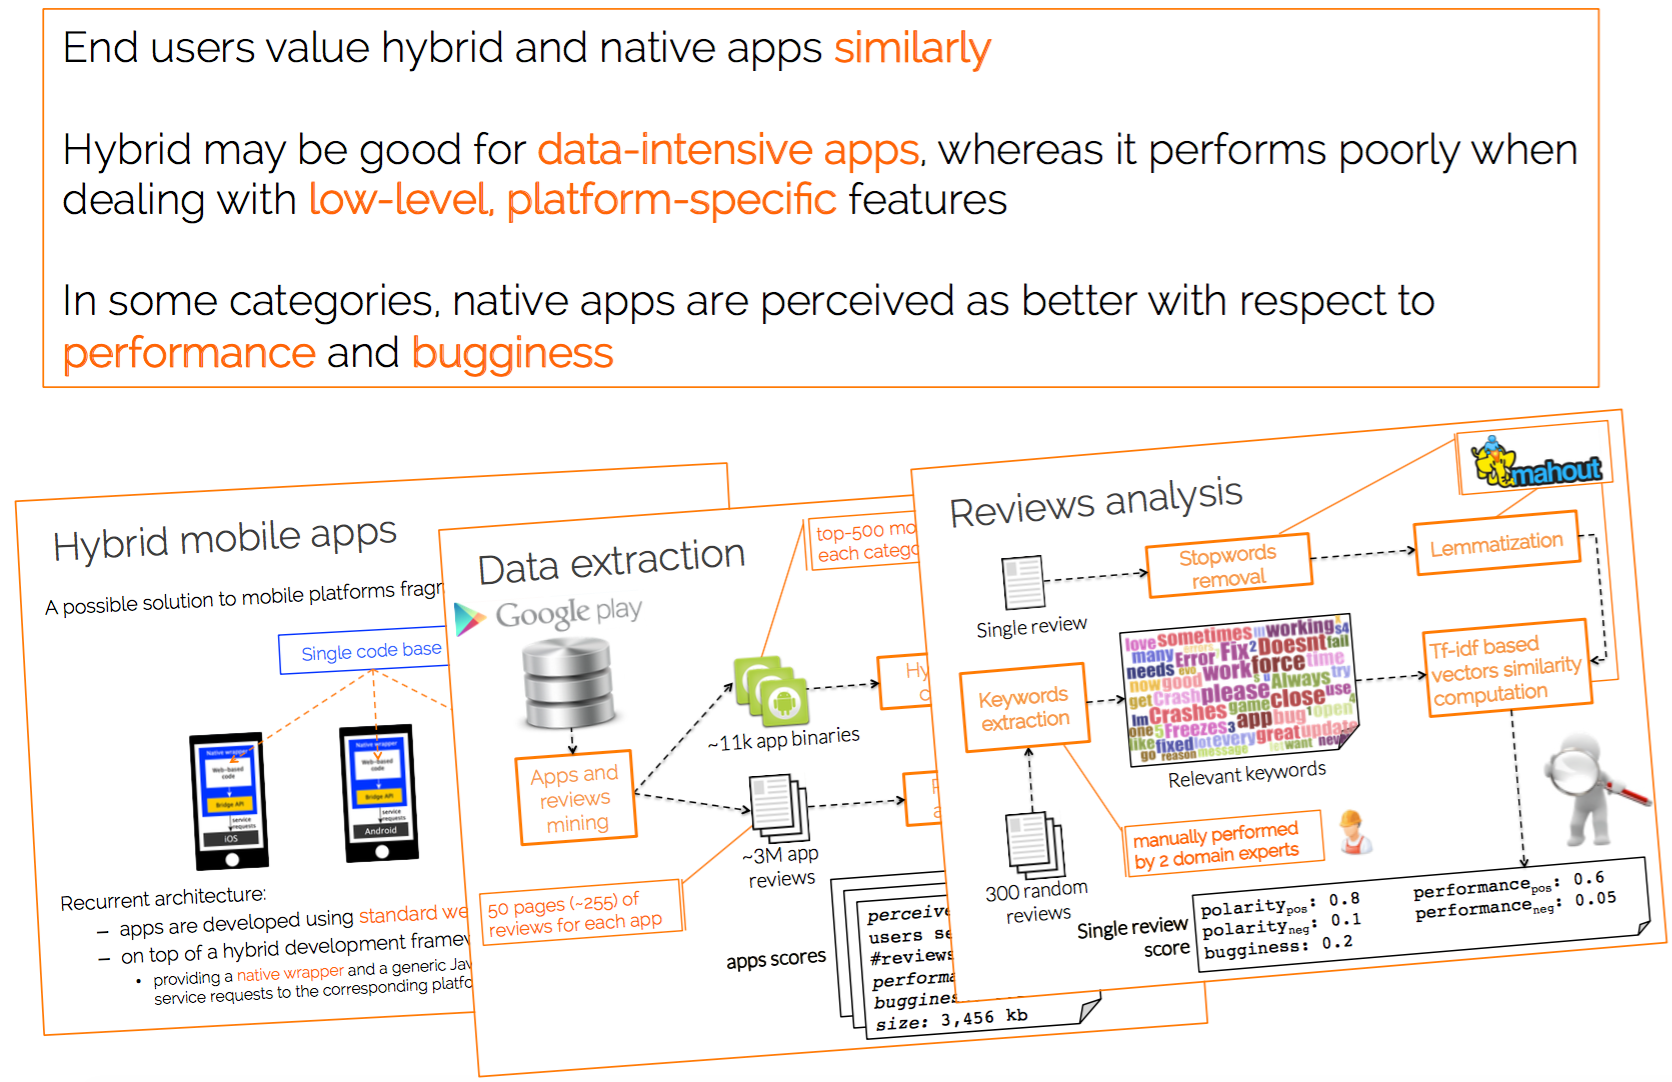 End Users' Perception of Hybrid Mobile Apps in the Google Play Store